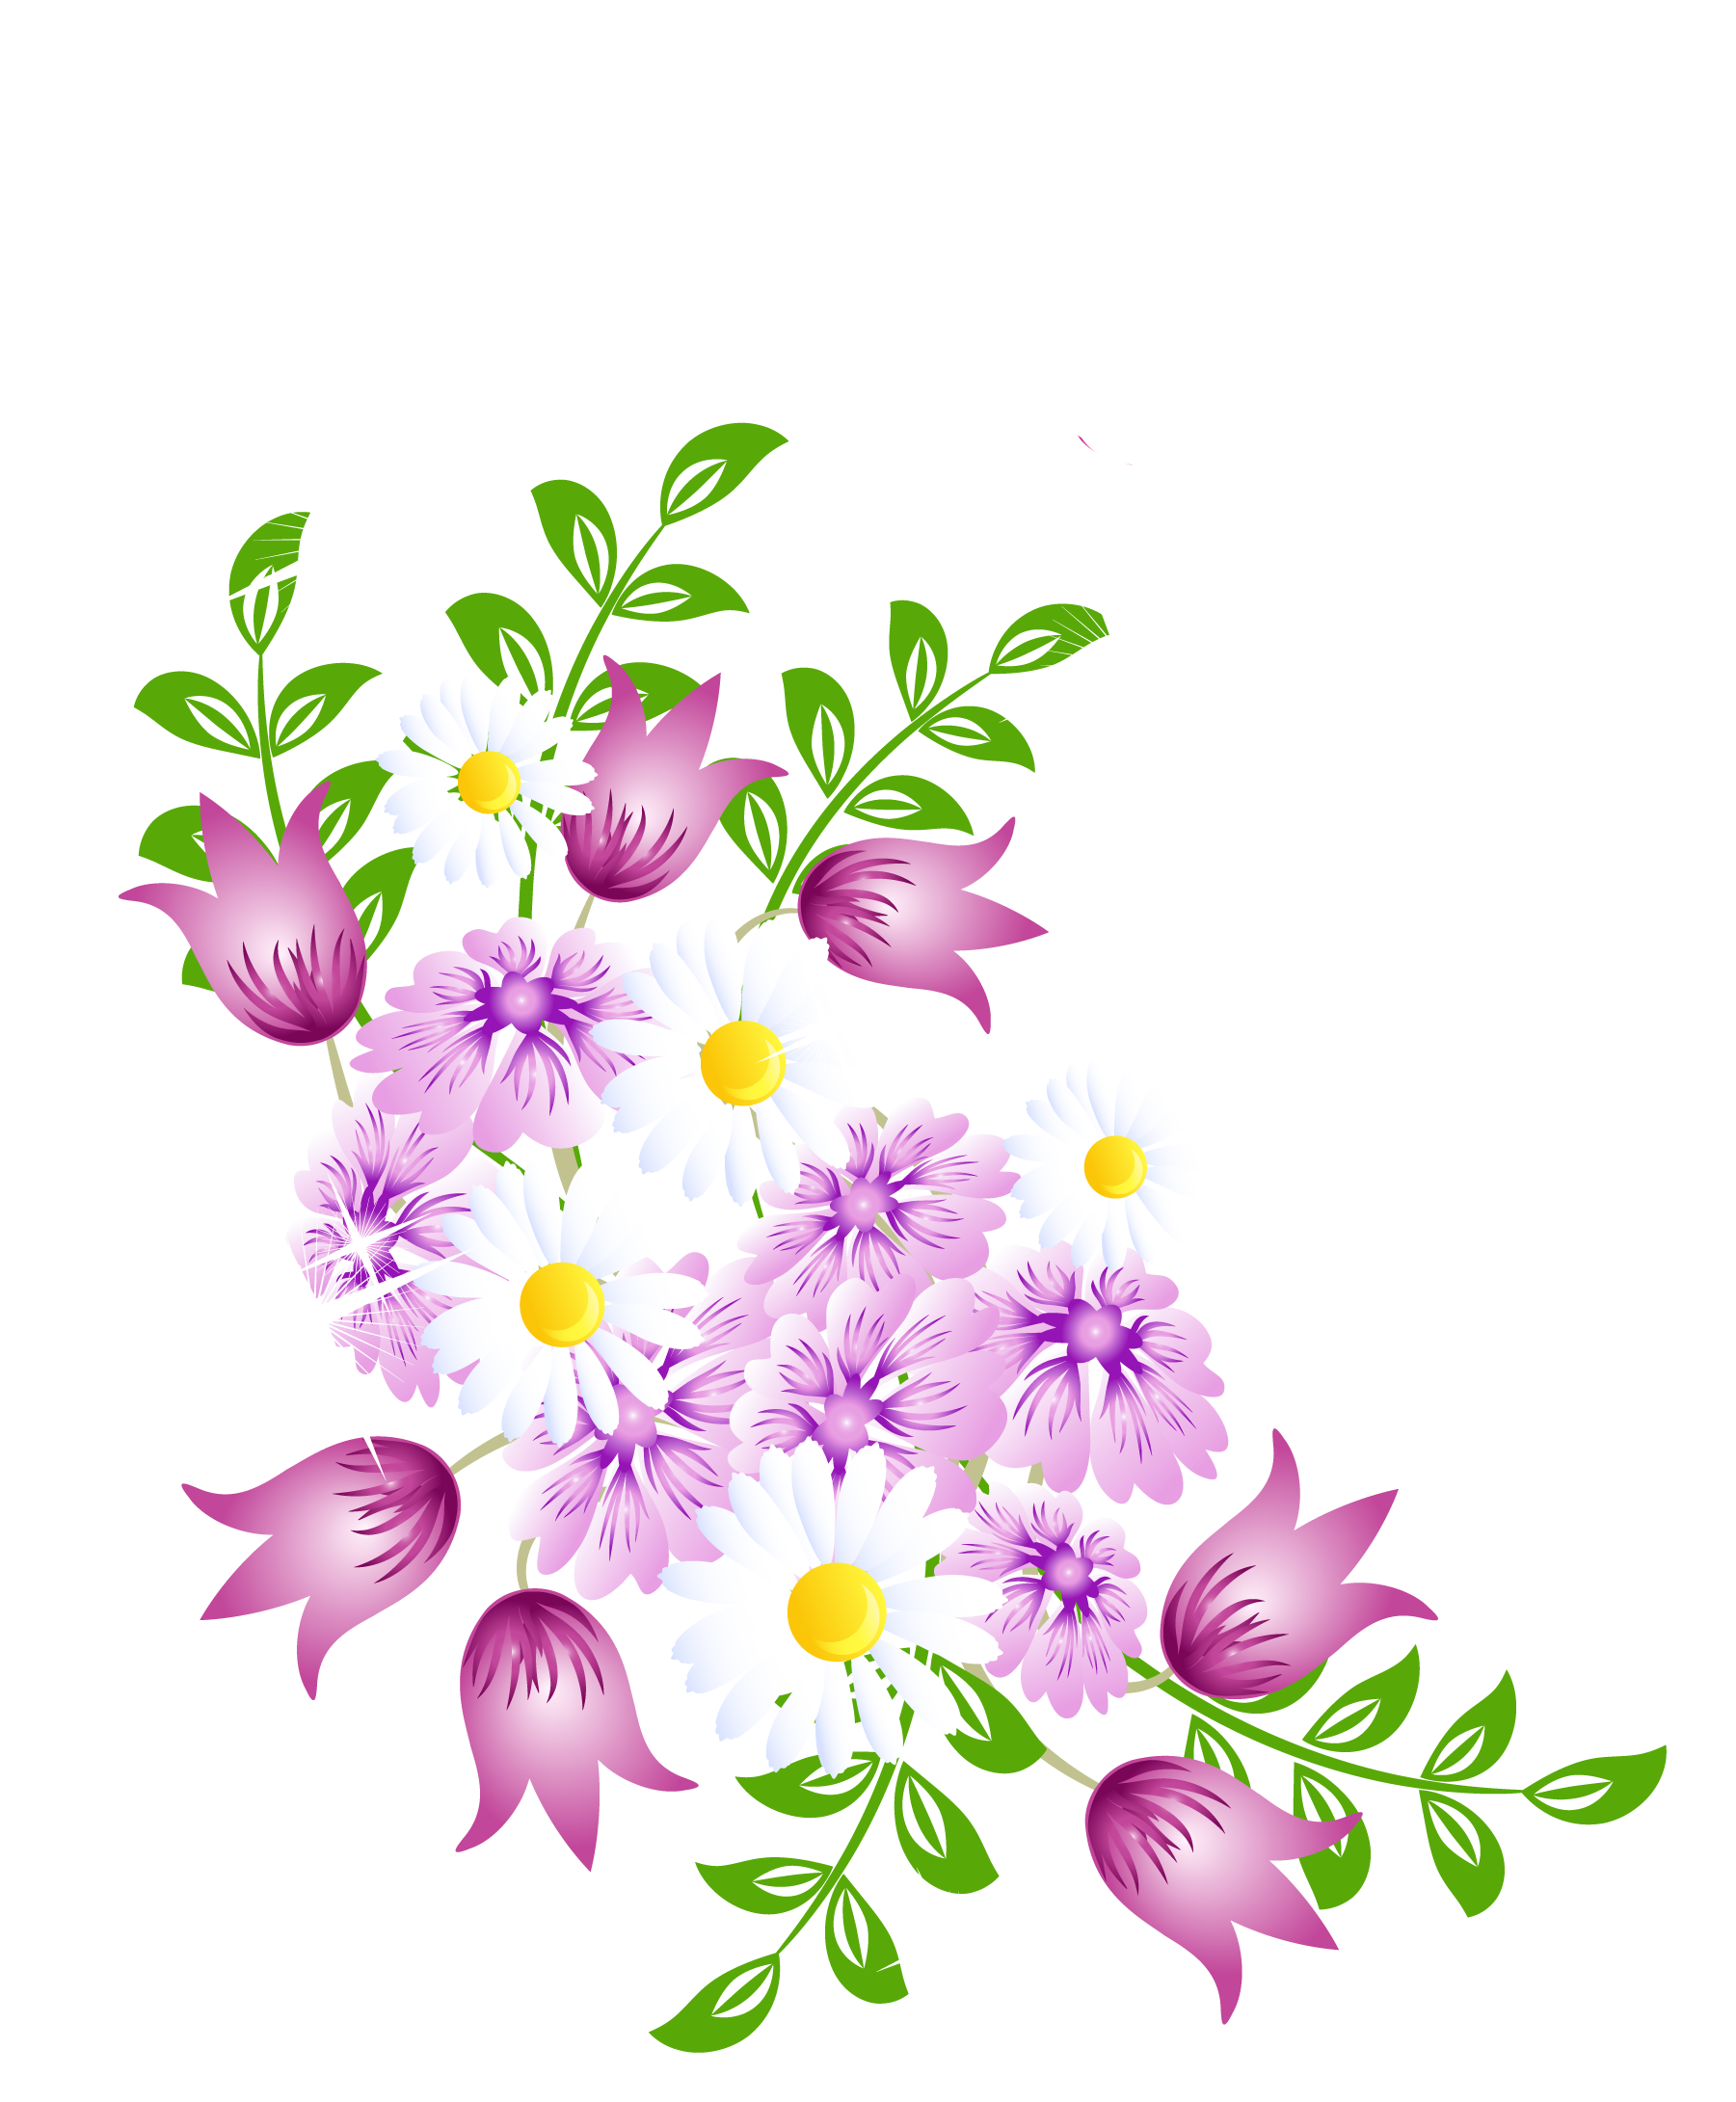 Spring Flowers Decor Png Picture Clipart Cartoon Flowers Spring Flower Decor Flower Painting